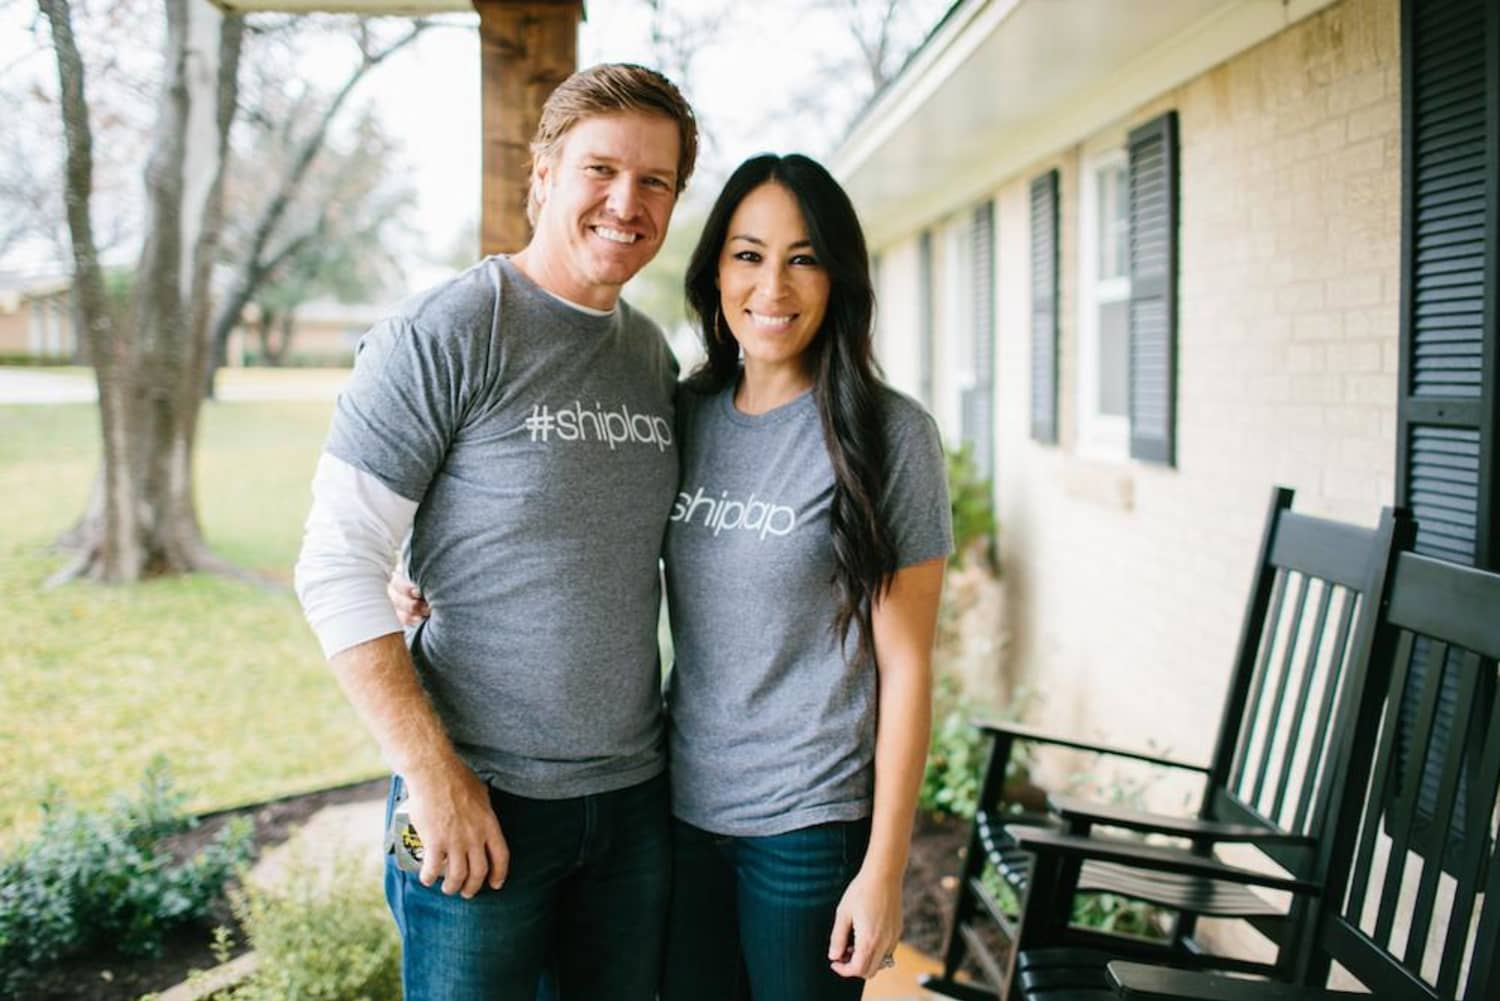 Chip and Joanna Gaines Have an Ingenious Use for Pickle Juice